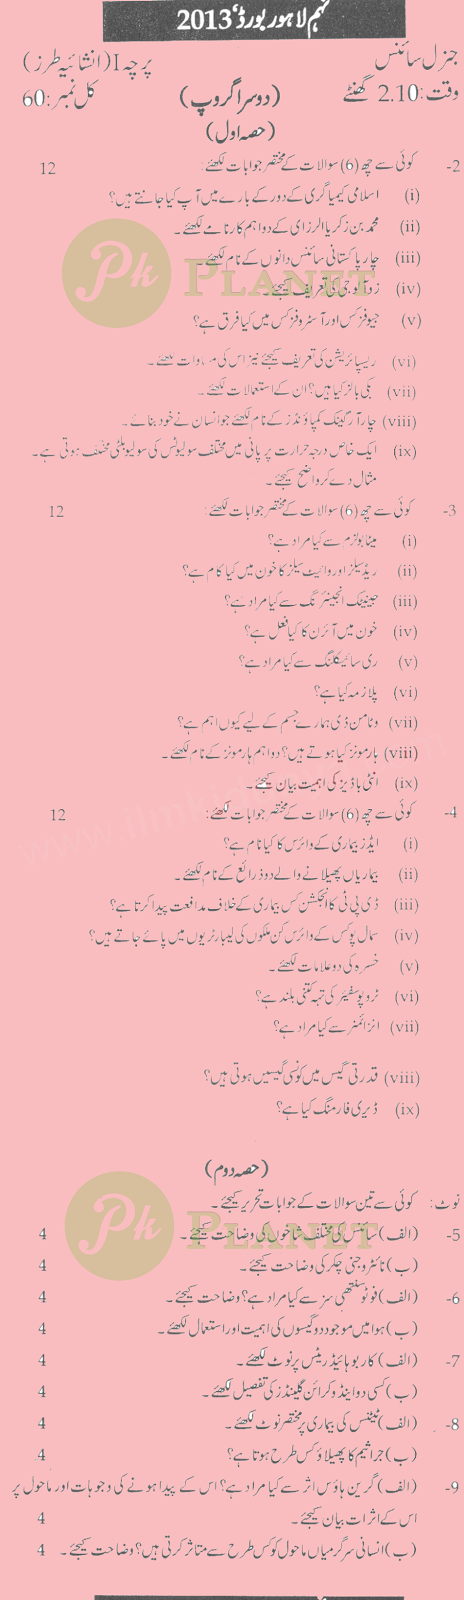 Past Papers of 9th Class Lahore Board 2013 General Science